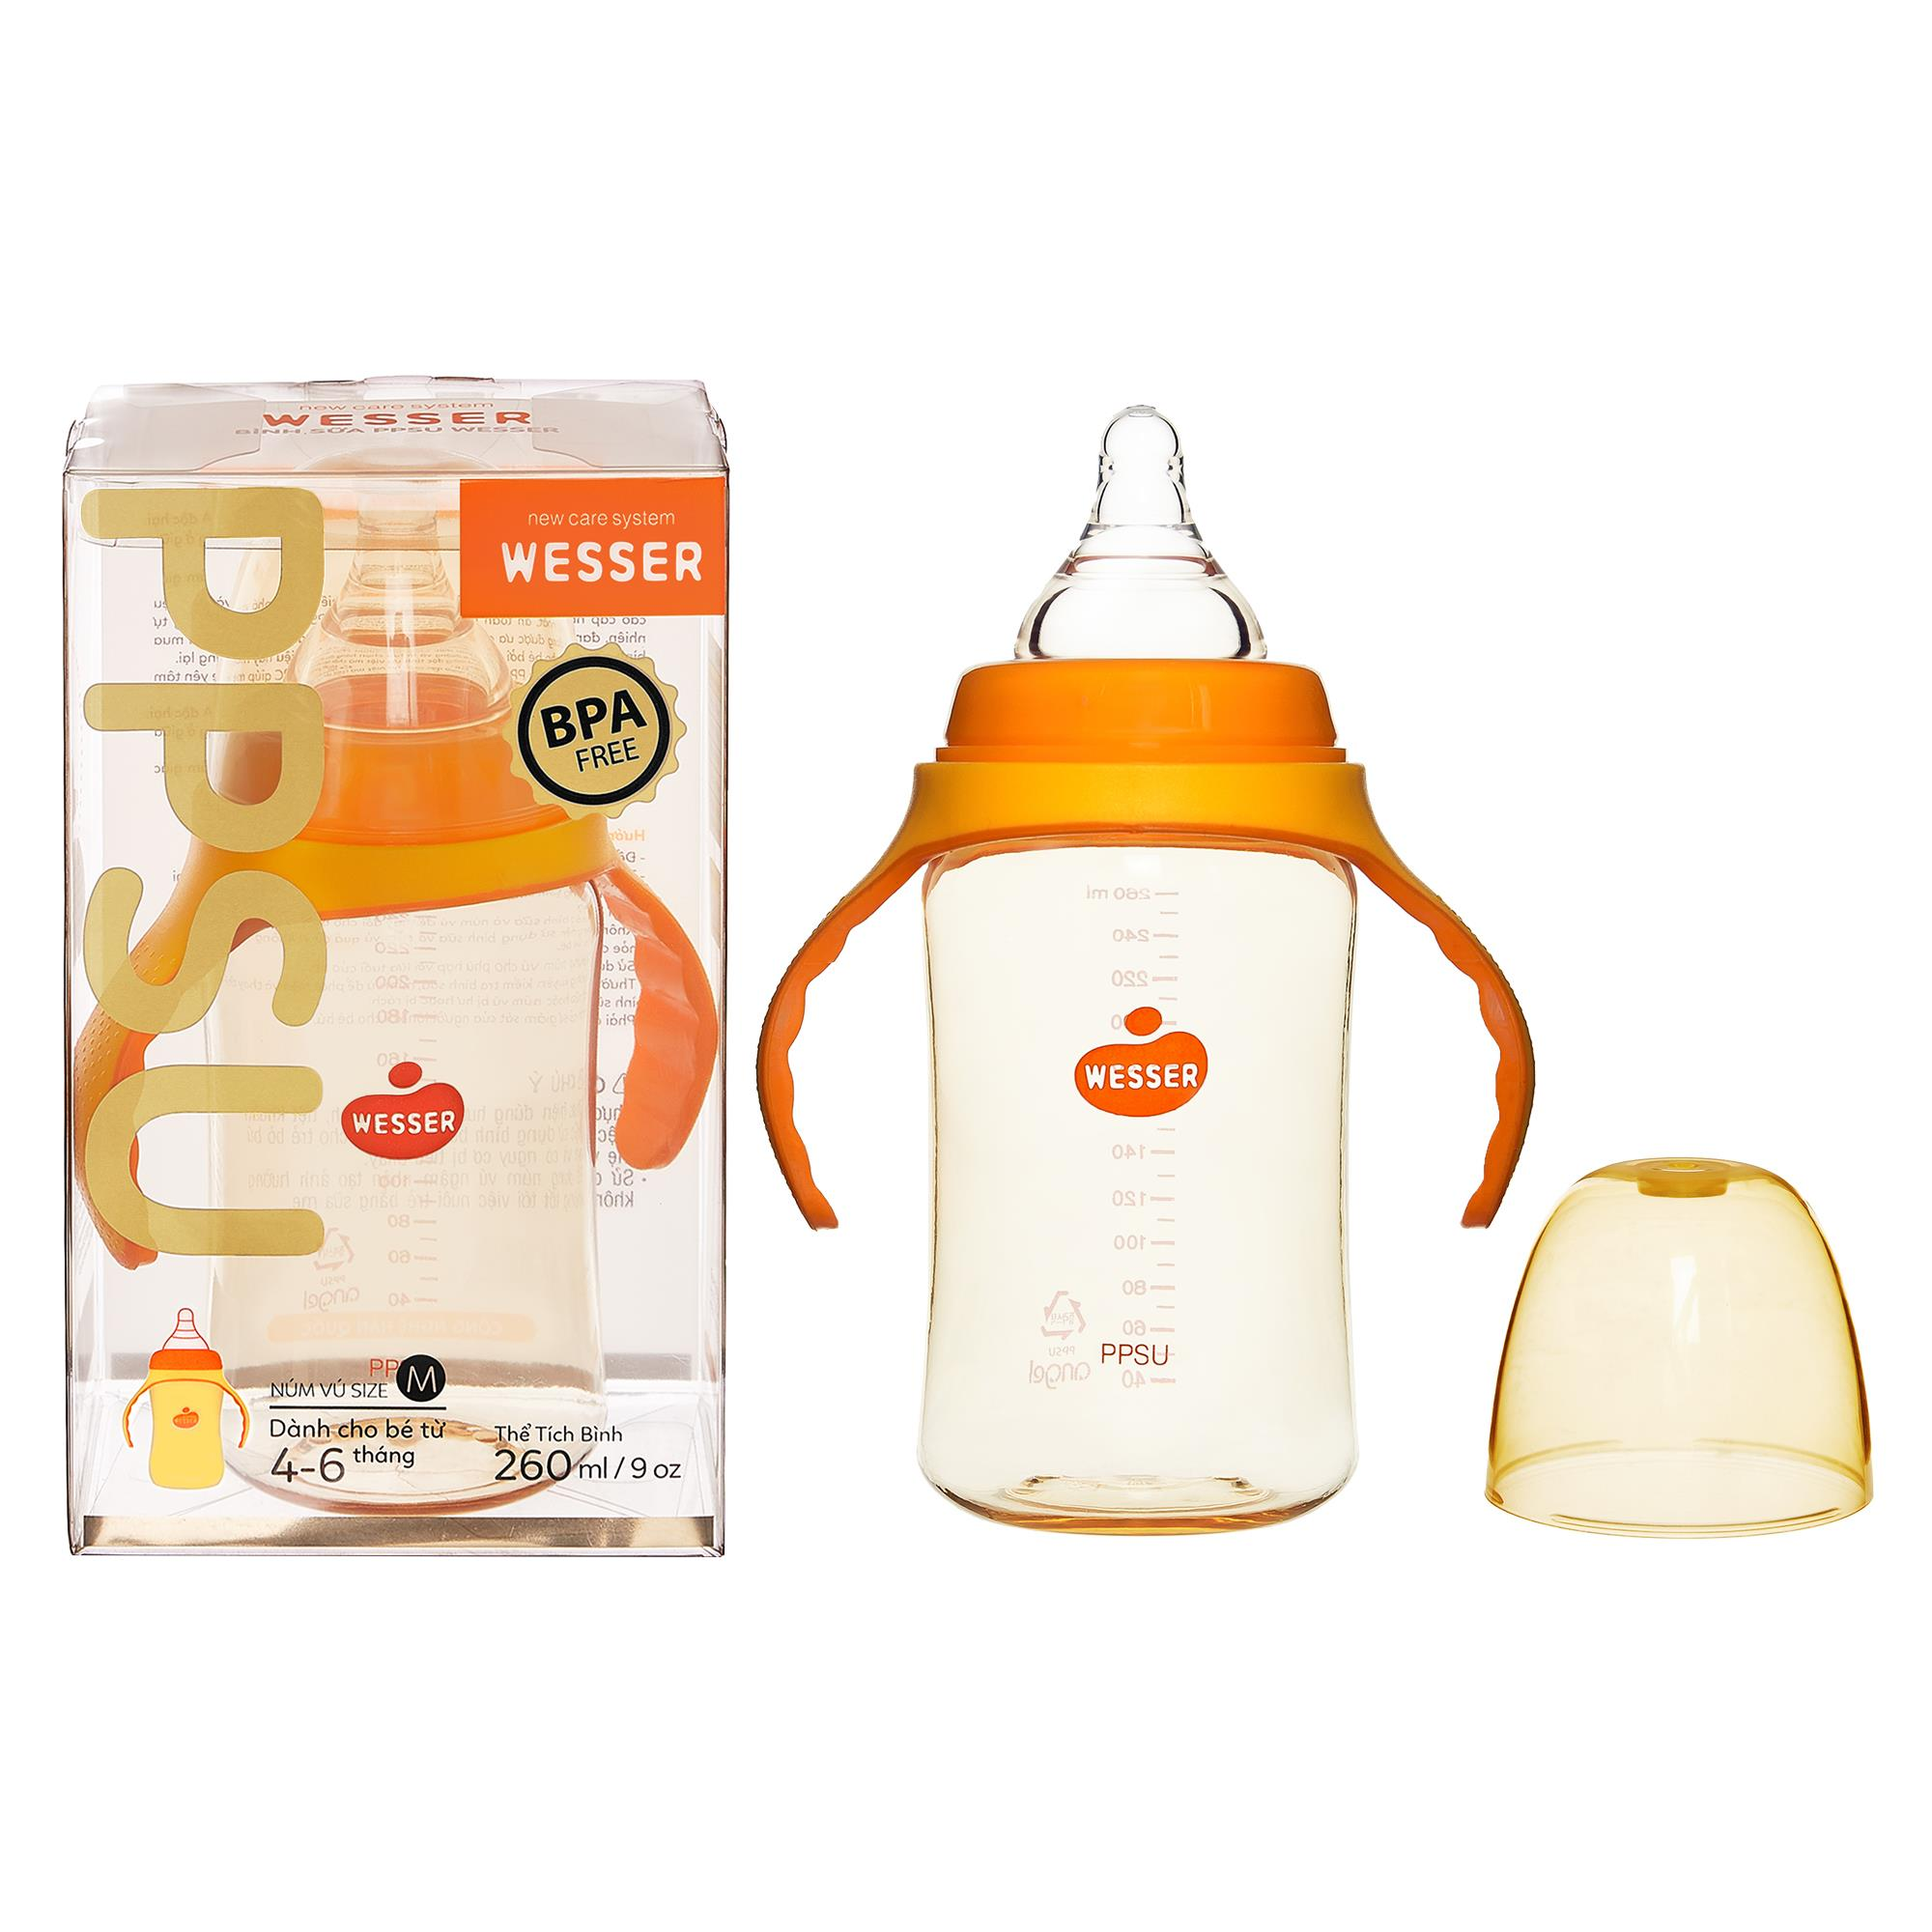 Wesser PPSU Feeding Bottle 260ml